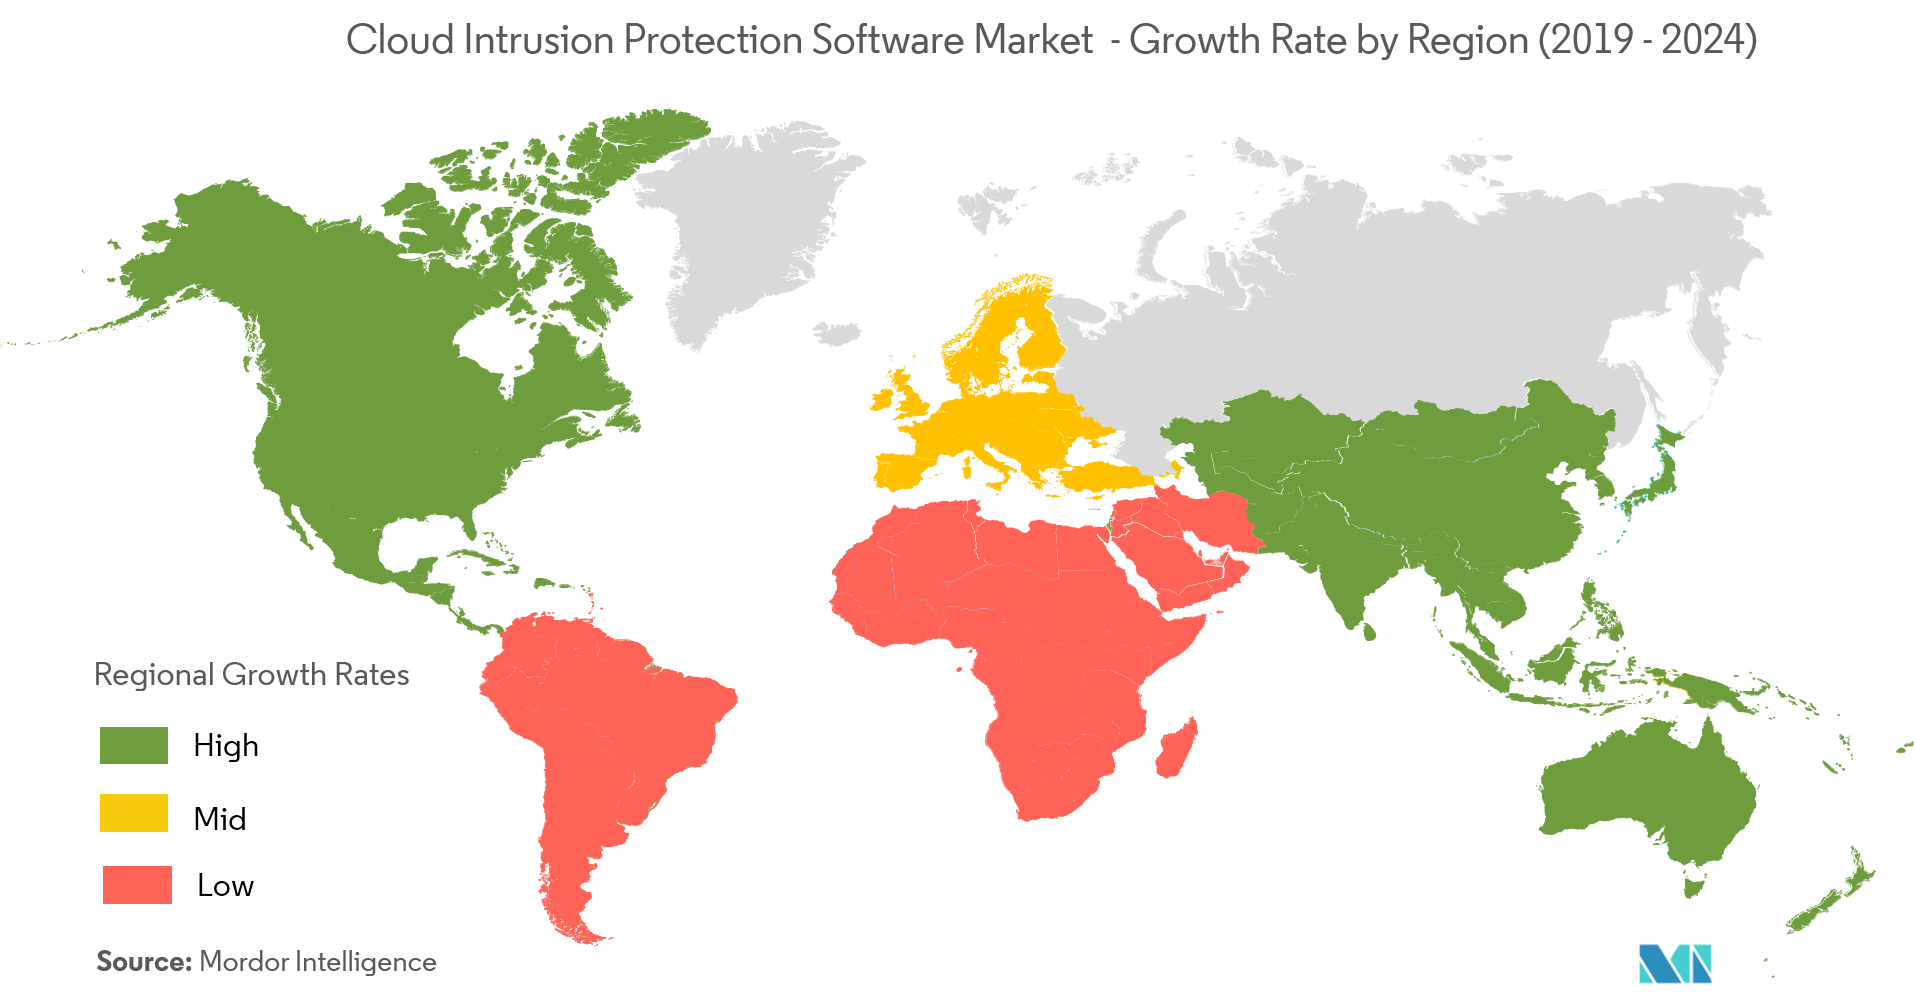 gobal cloud intrusion protection software market